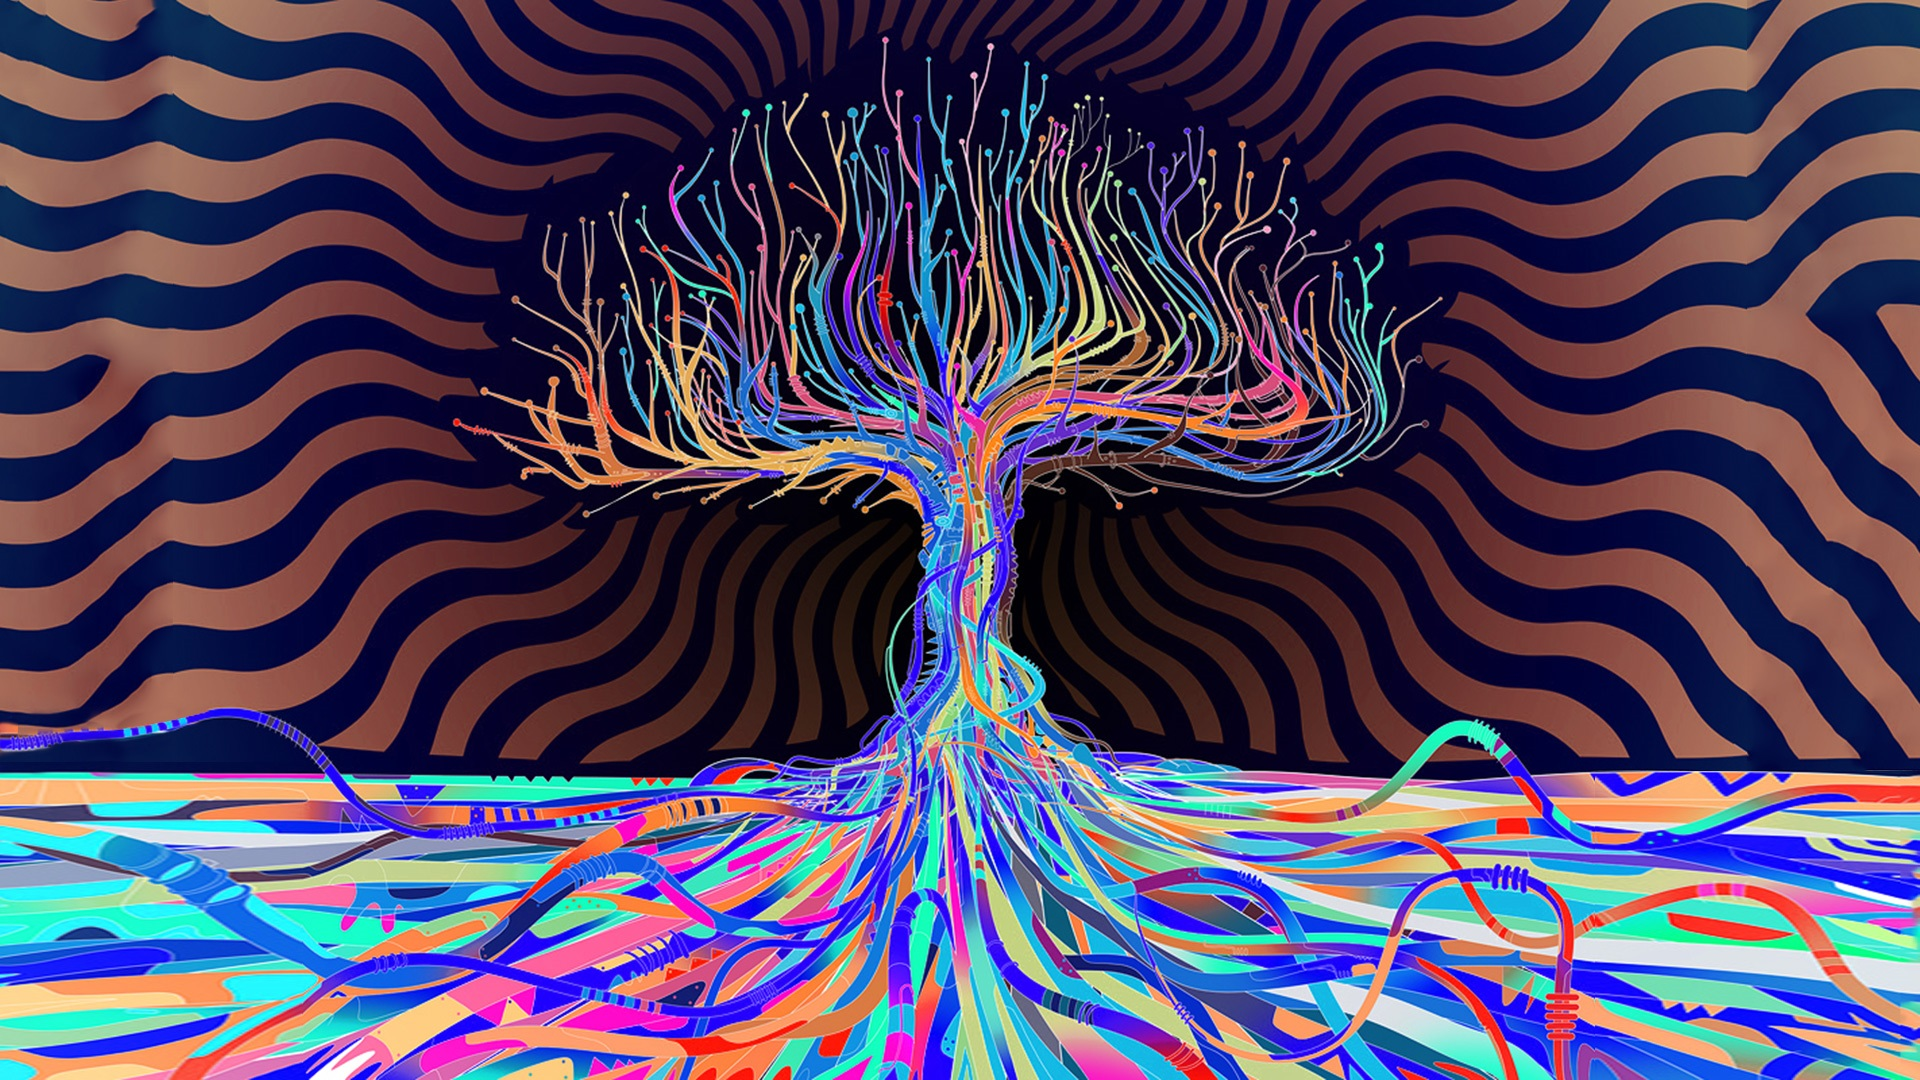 Psychedelic HD Wallpapers 1920x1080